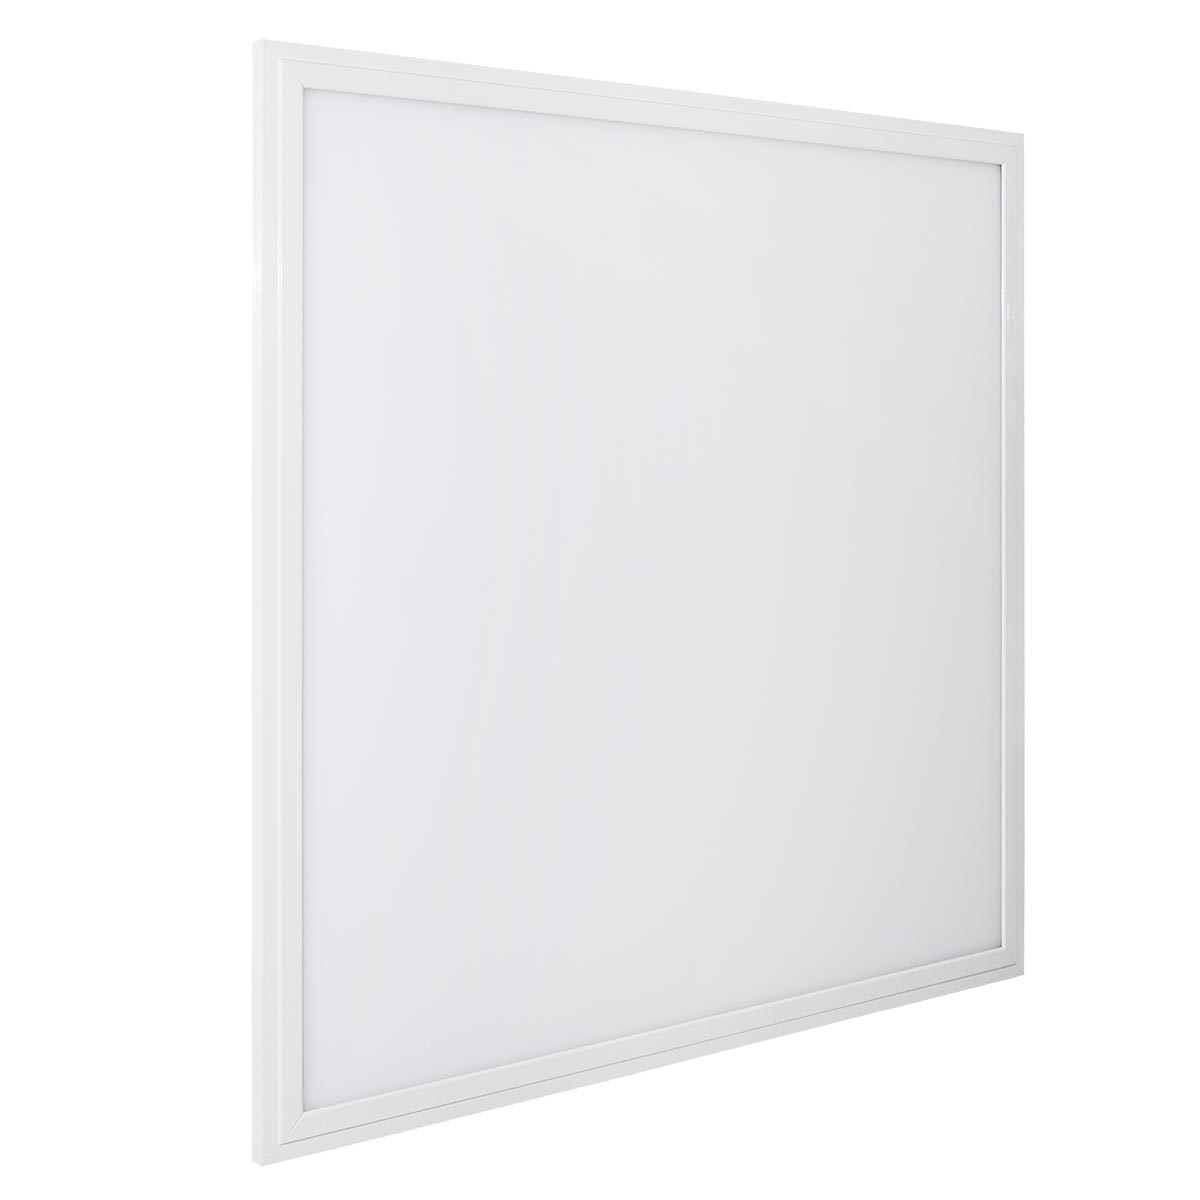 LED Light Panel 620x620 Weiss 40W 3000K 4'600lm UGR19 IP20